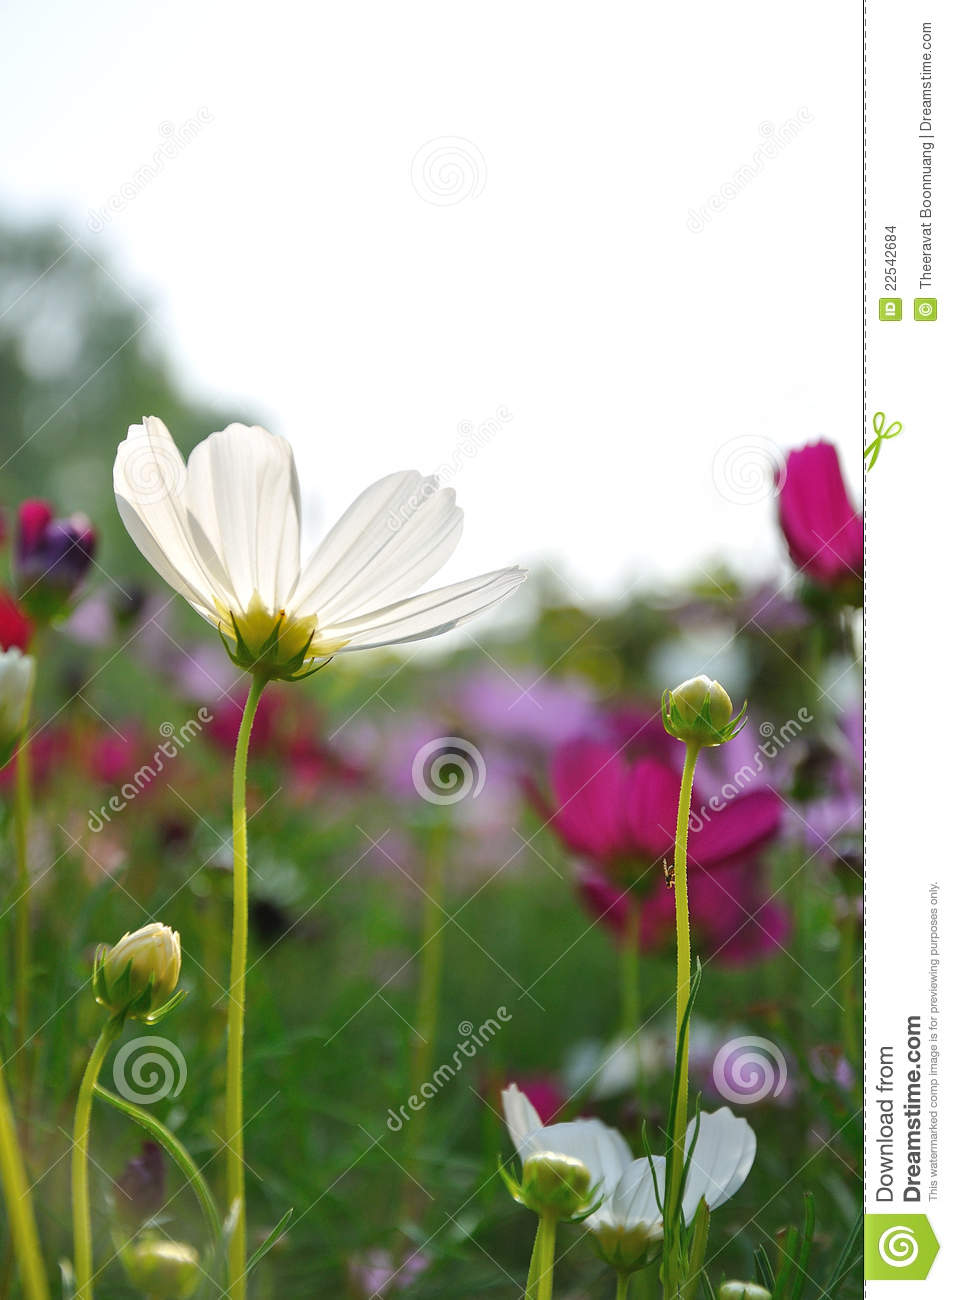 Colorful Daisies In Grass Field Stock Images - Image: 22542684